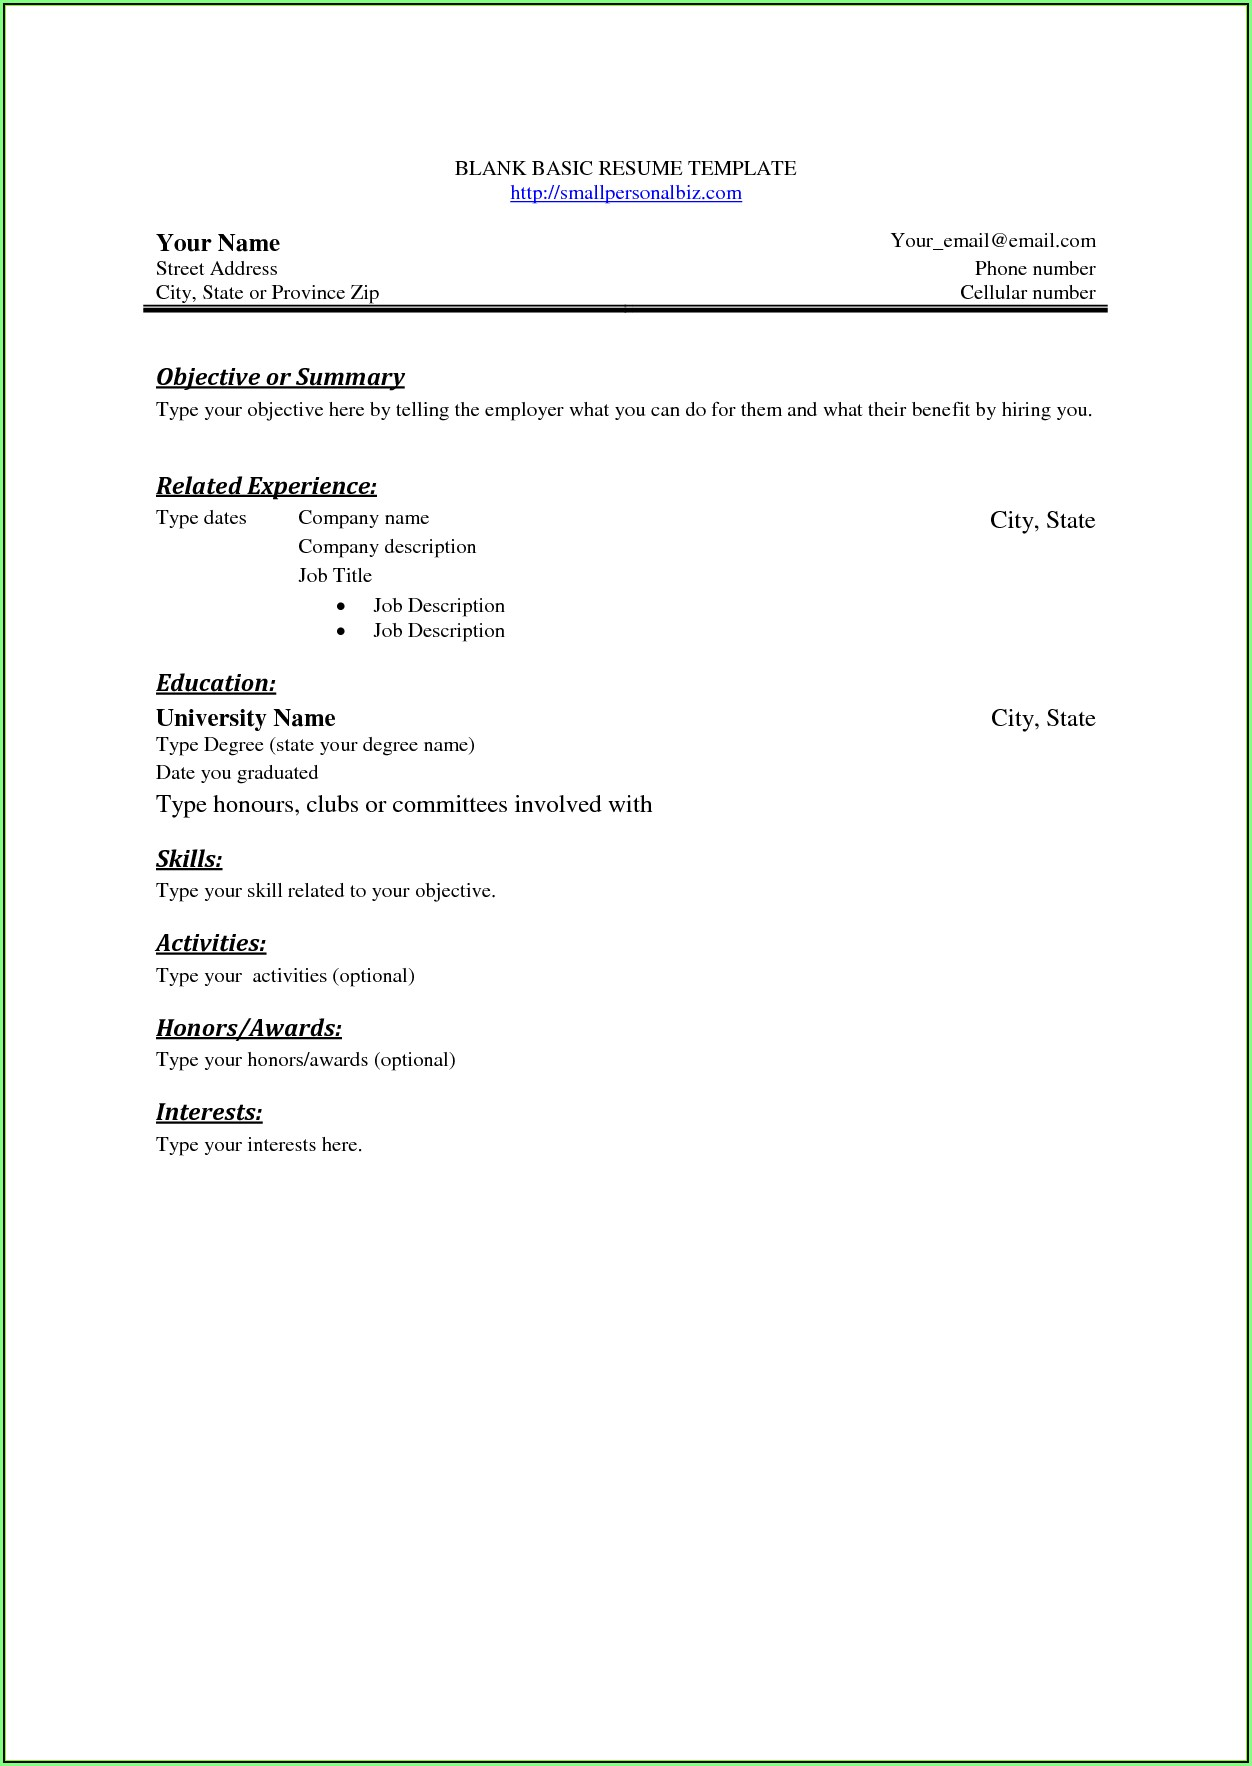 Free Basic Blank Resume Templates